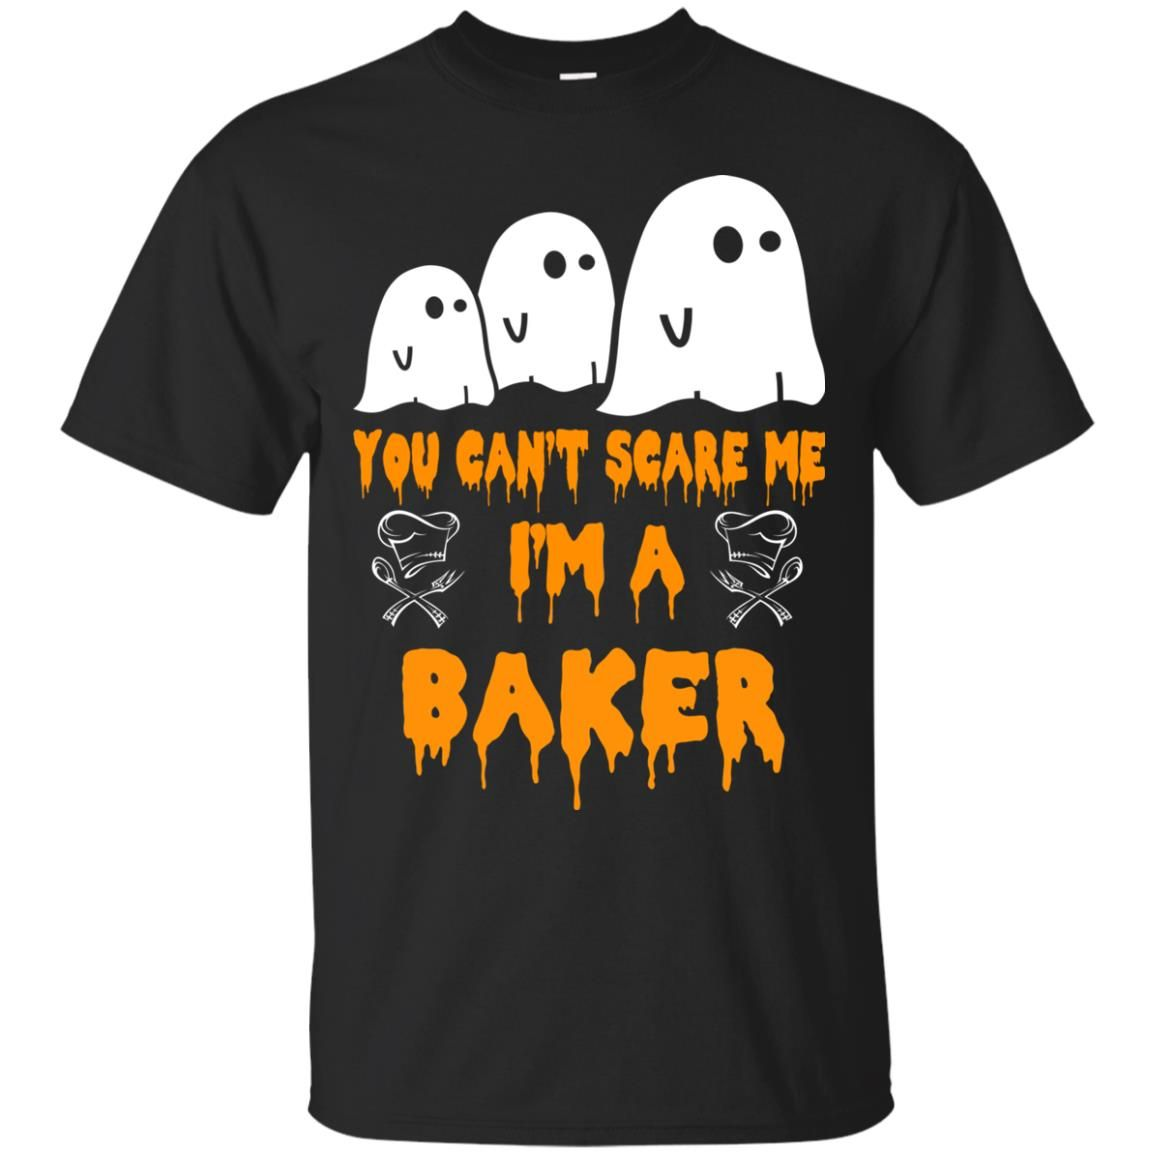 image 501 - You can't scare me I'm a Baker shirt, hoodie, tank